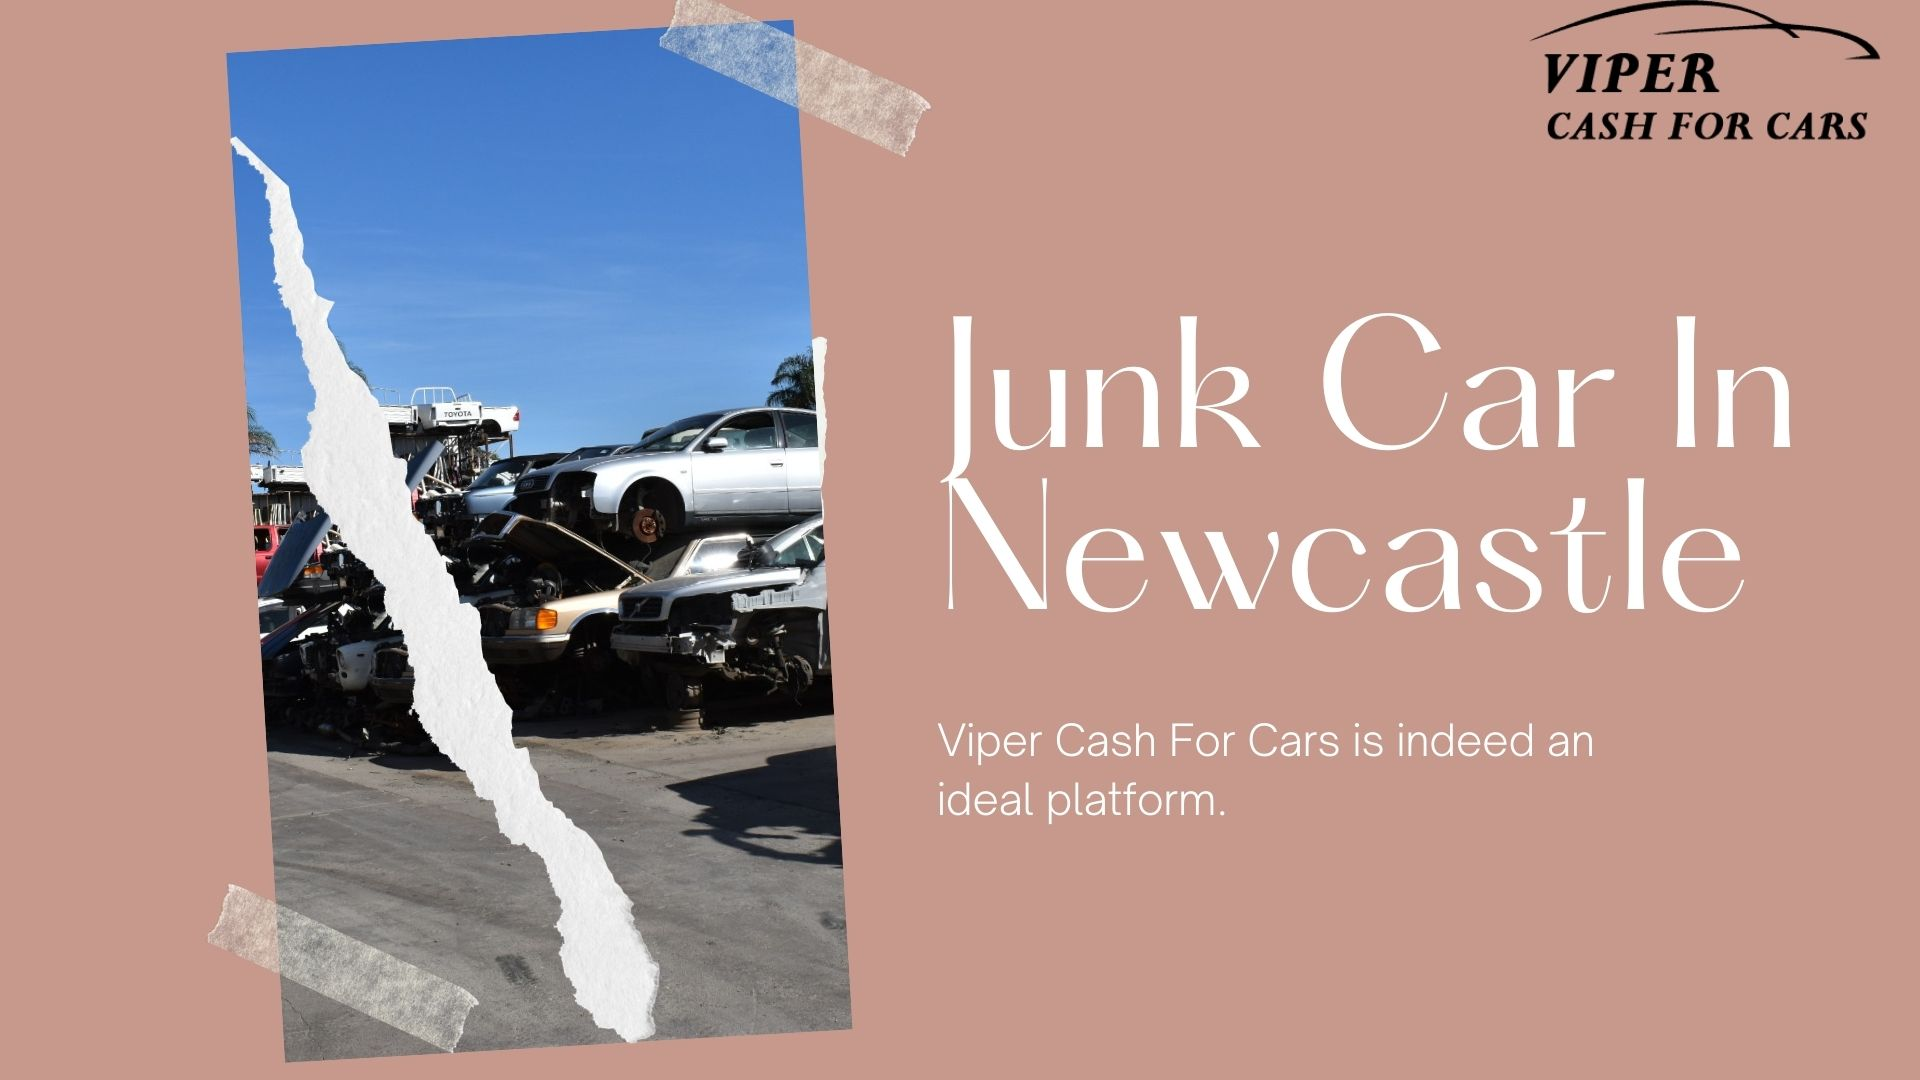 Whom To Sell Junk Car In Newcastle and Why : Viper Cash For Cars